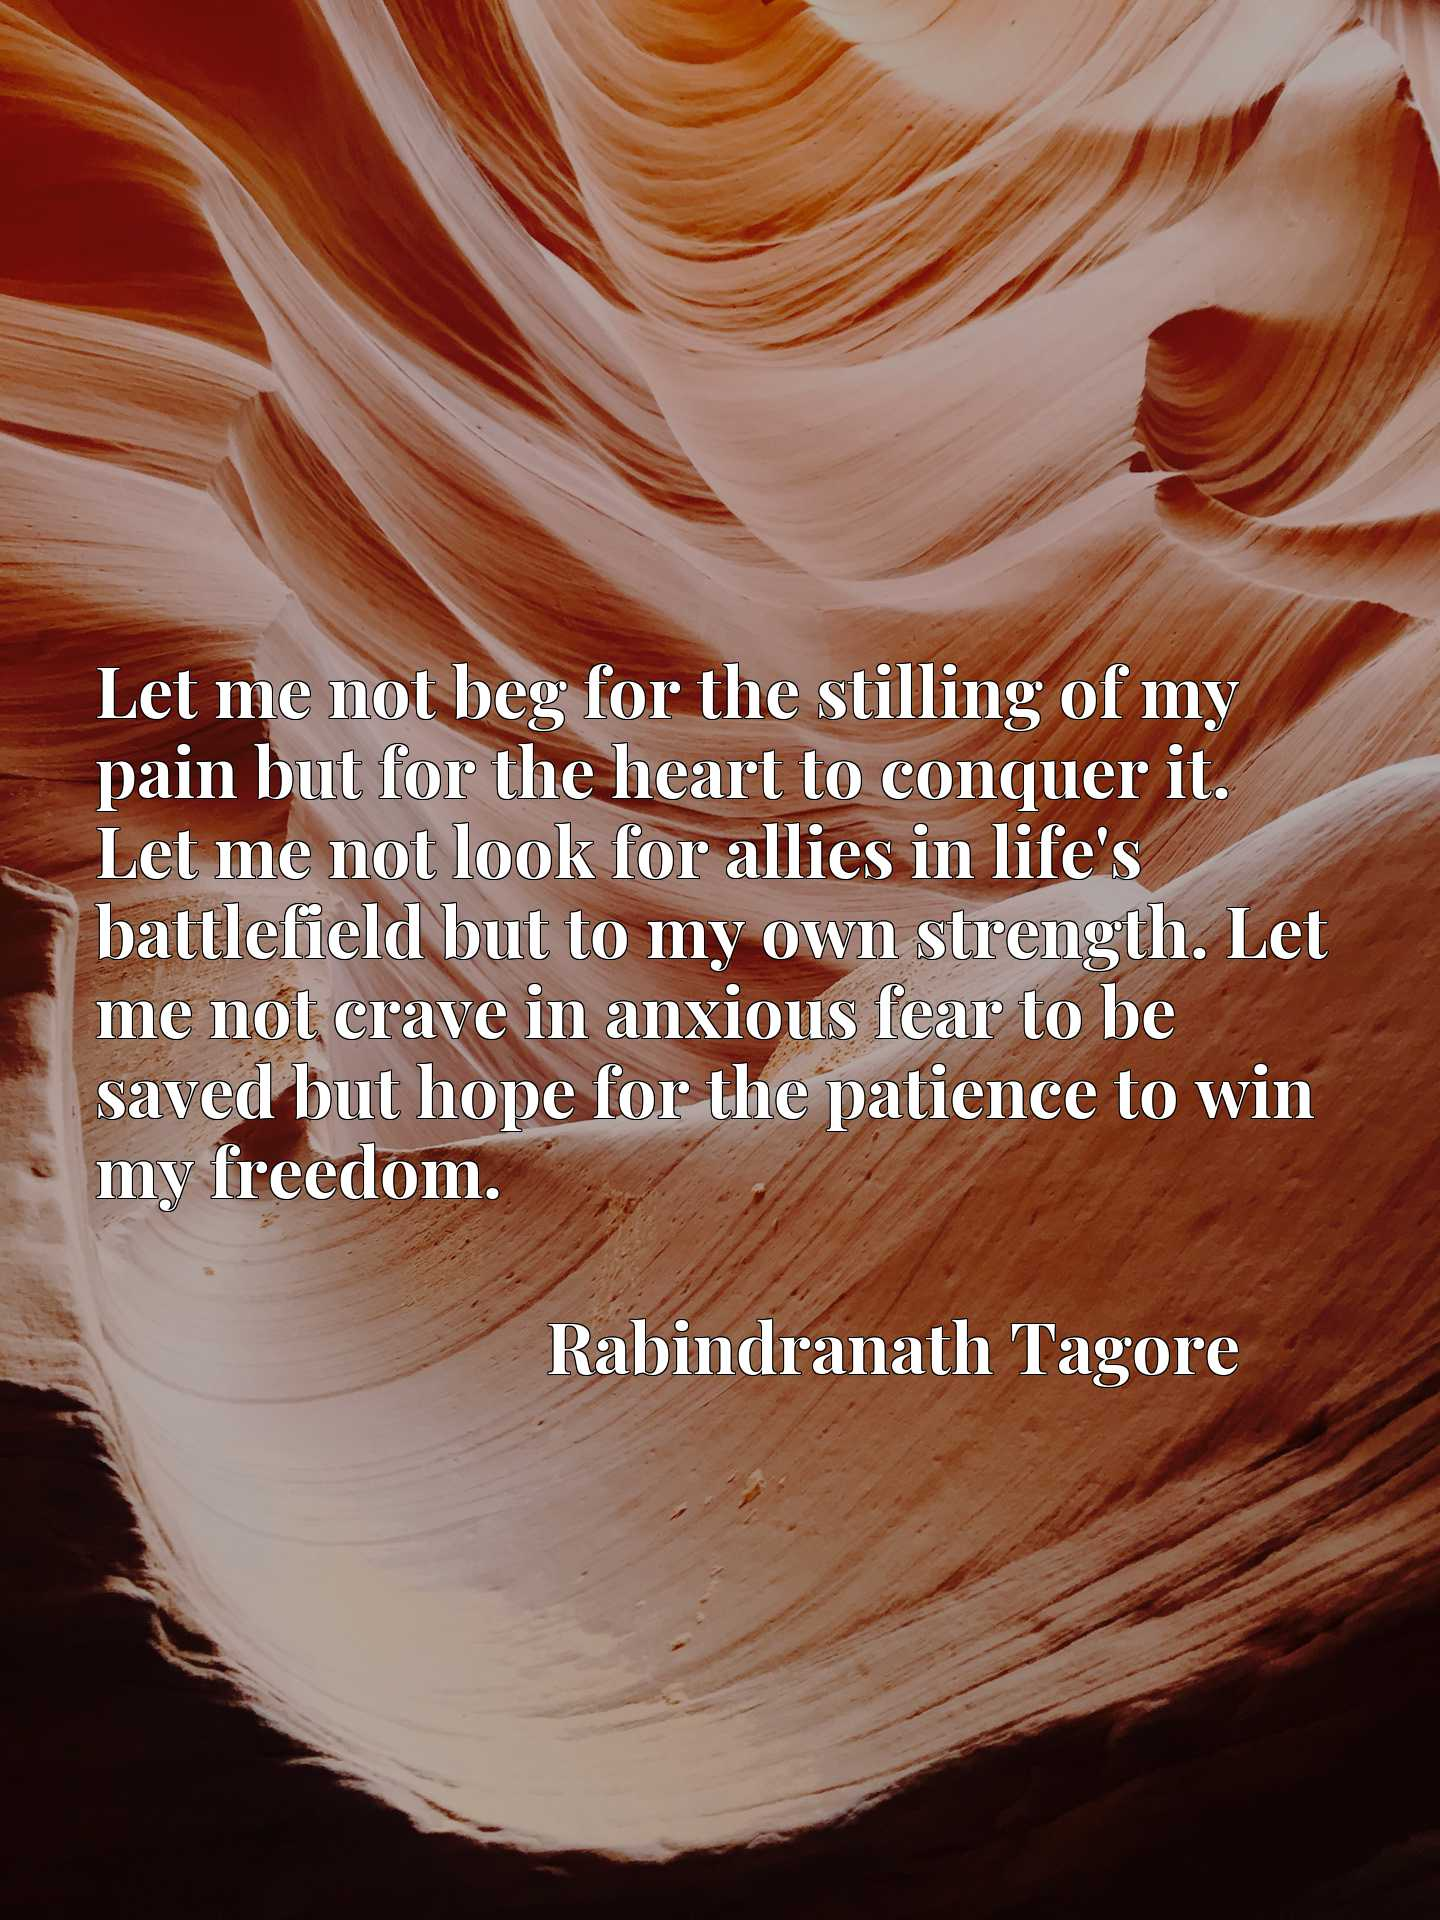 Let me not beg for the stilling of my pain but for the heart to conquer it. Let me not look for allies in life's battlefield but to my own strength. Let me not crave in anxious fear to be saved but hope for the patience to win my freedom.